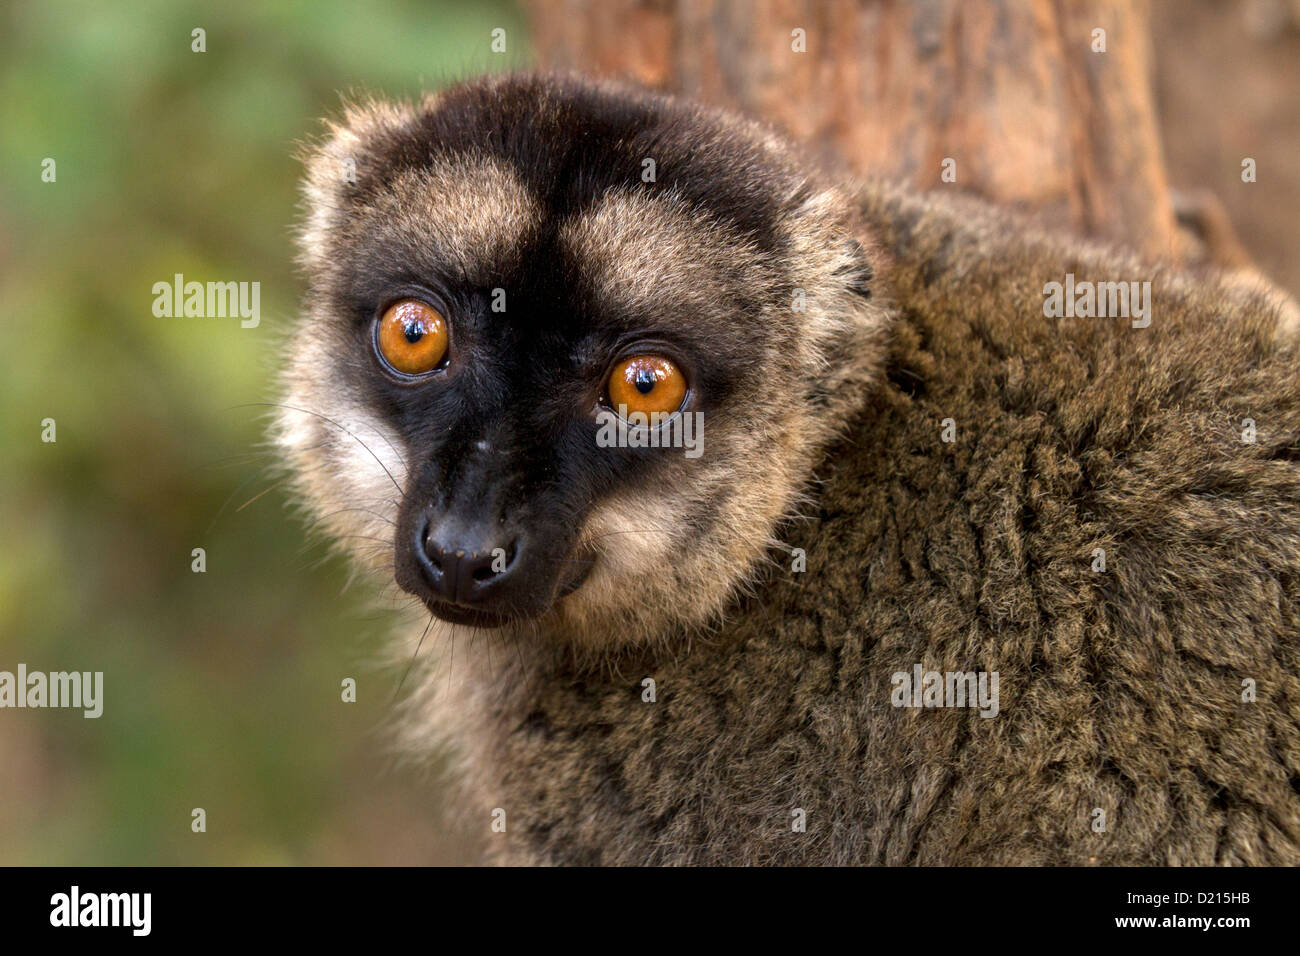 Common Brown Lemur, Eulemur fulvus, watches - Stock Image